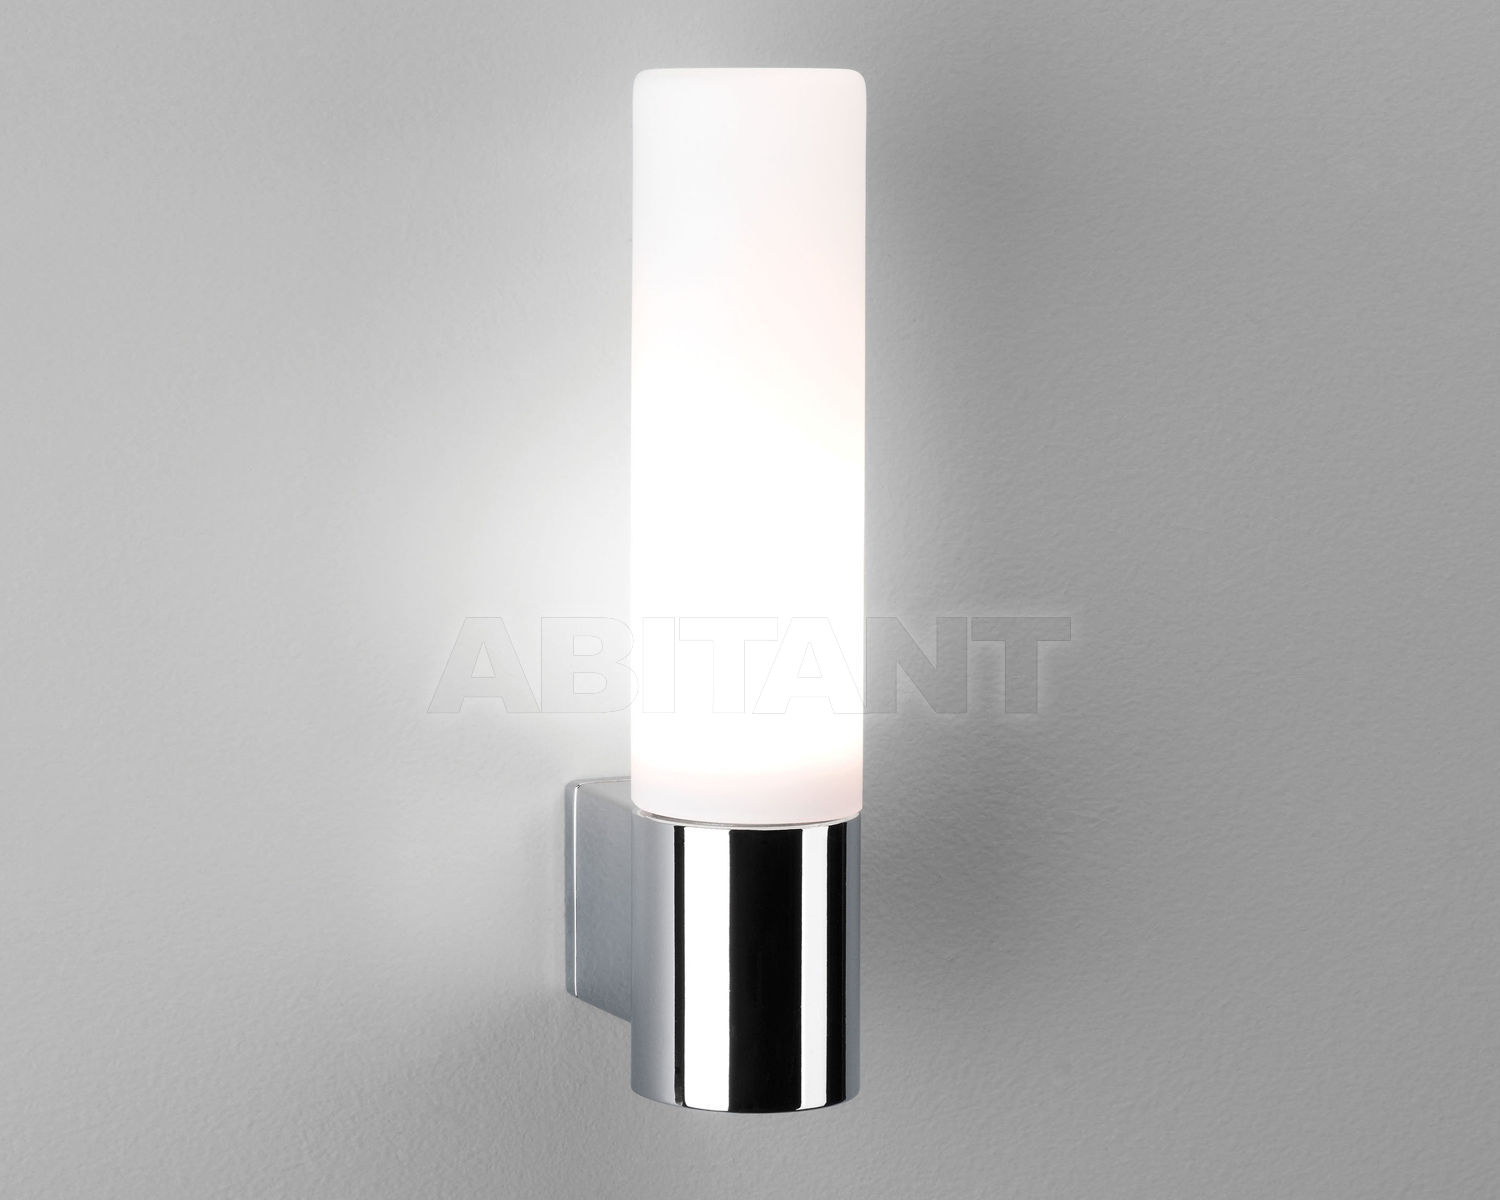 Купить Бра Bari Astro Lighting Bathroom 1047001